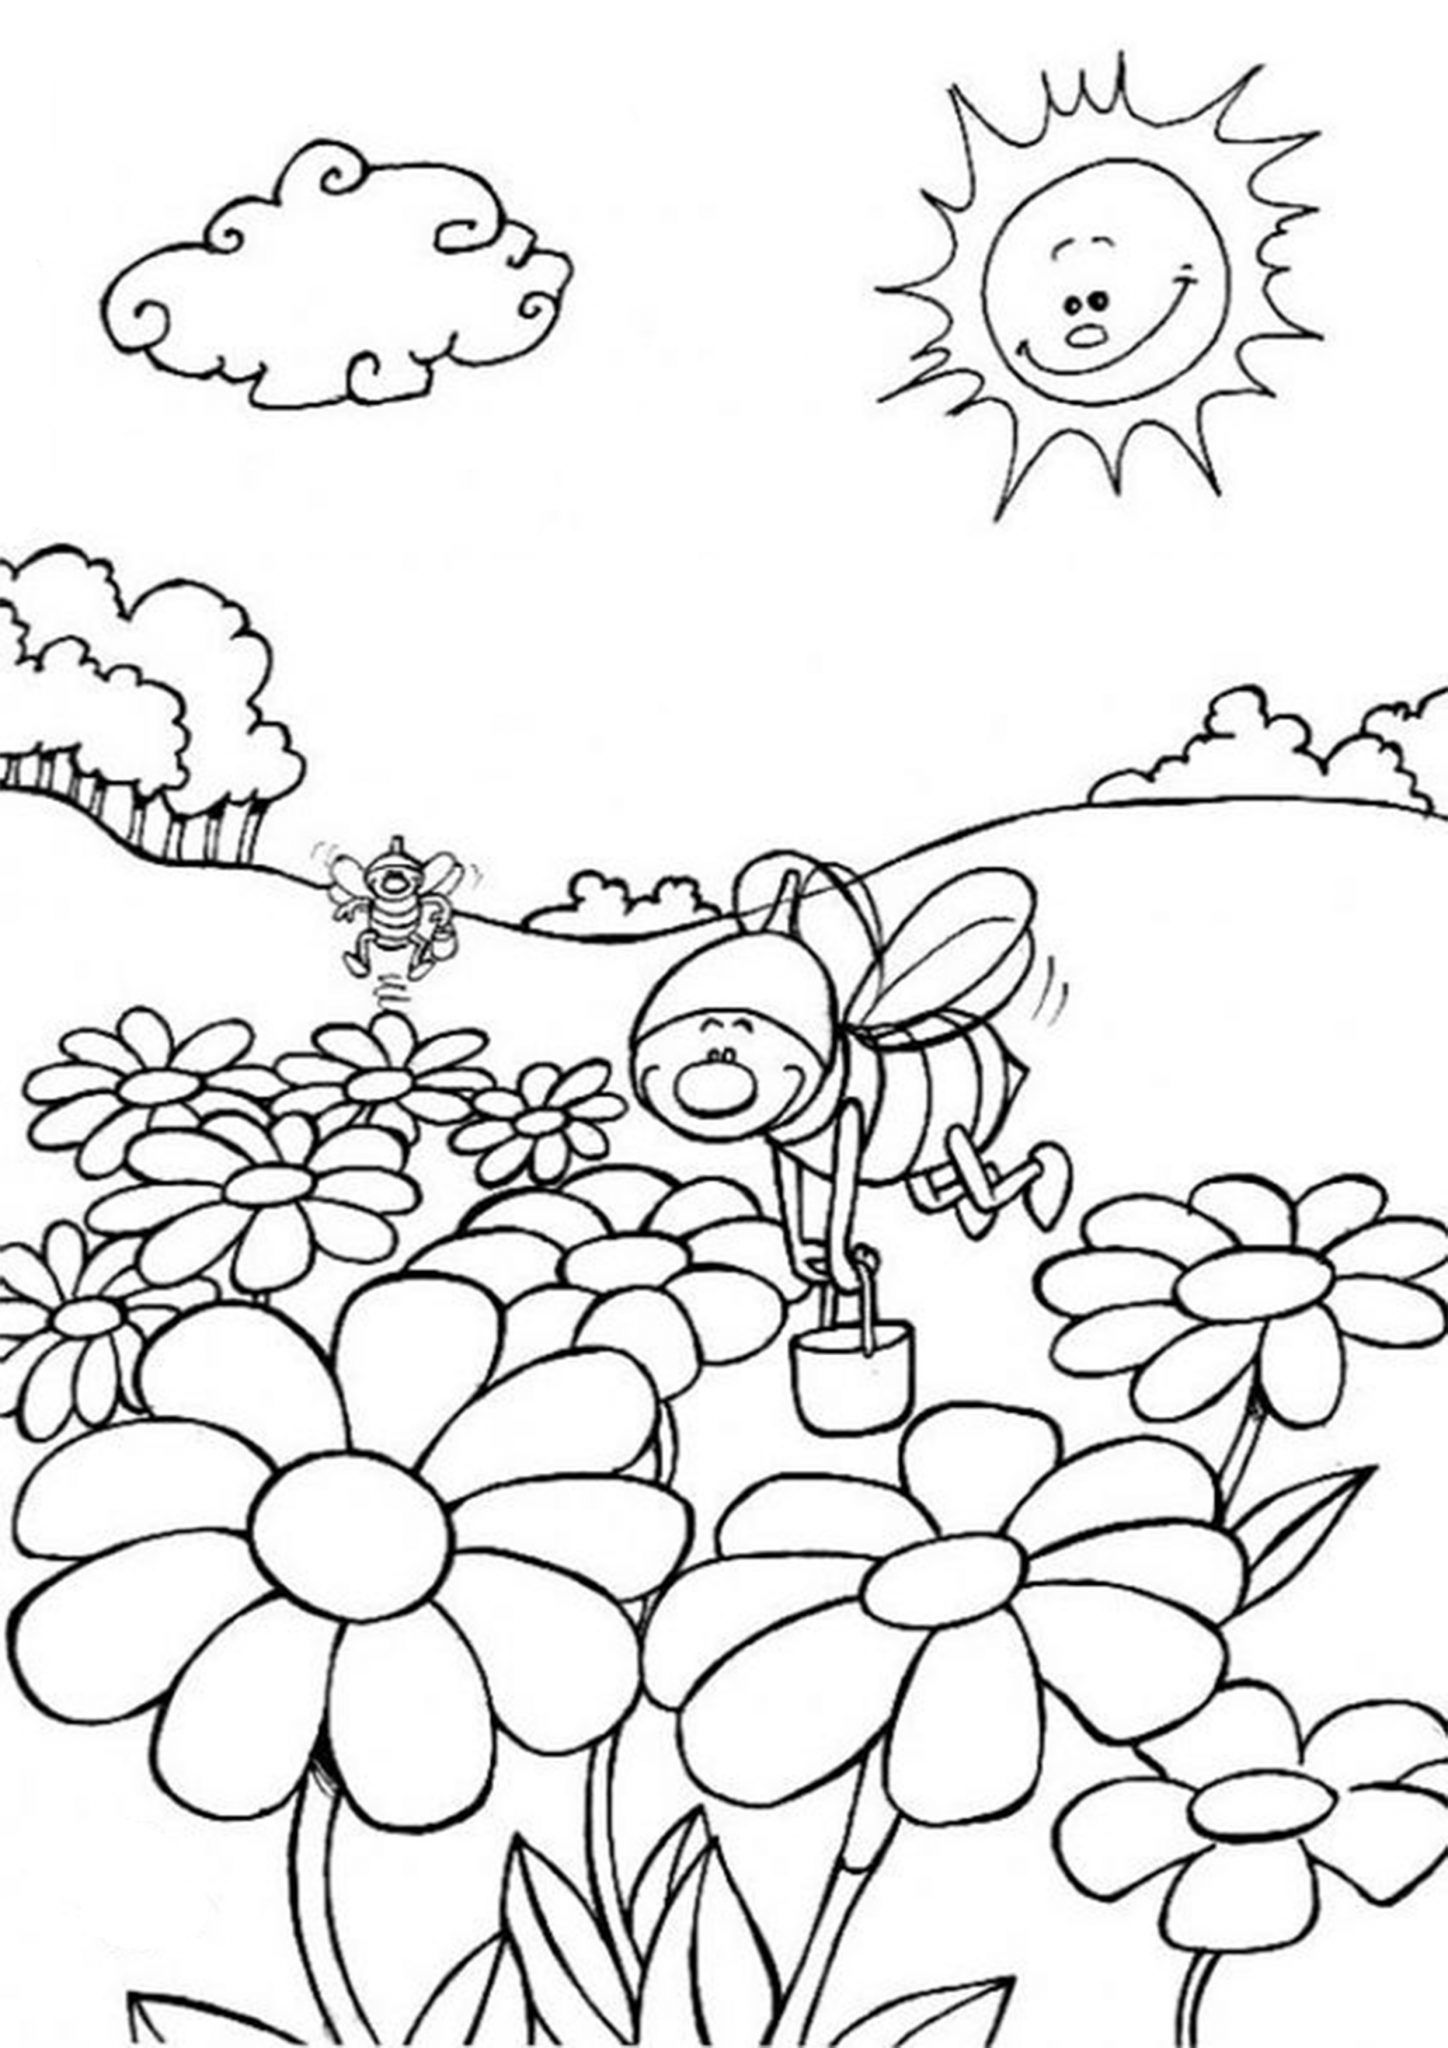 Free Easy To Print Flower Coloring Pages Bee Coloring Pages Insect Coloring Pages Farm Animal Coloring Pages [ 2048 x 1448 Pixel ]